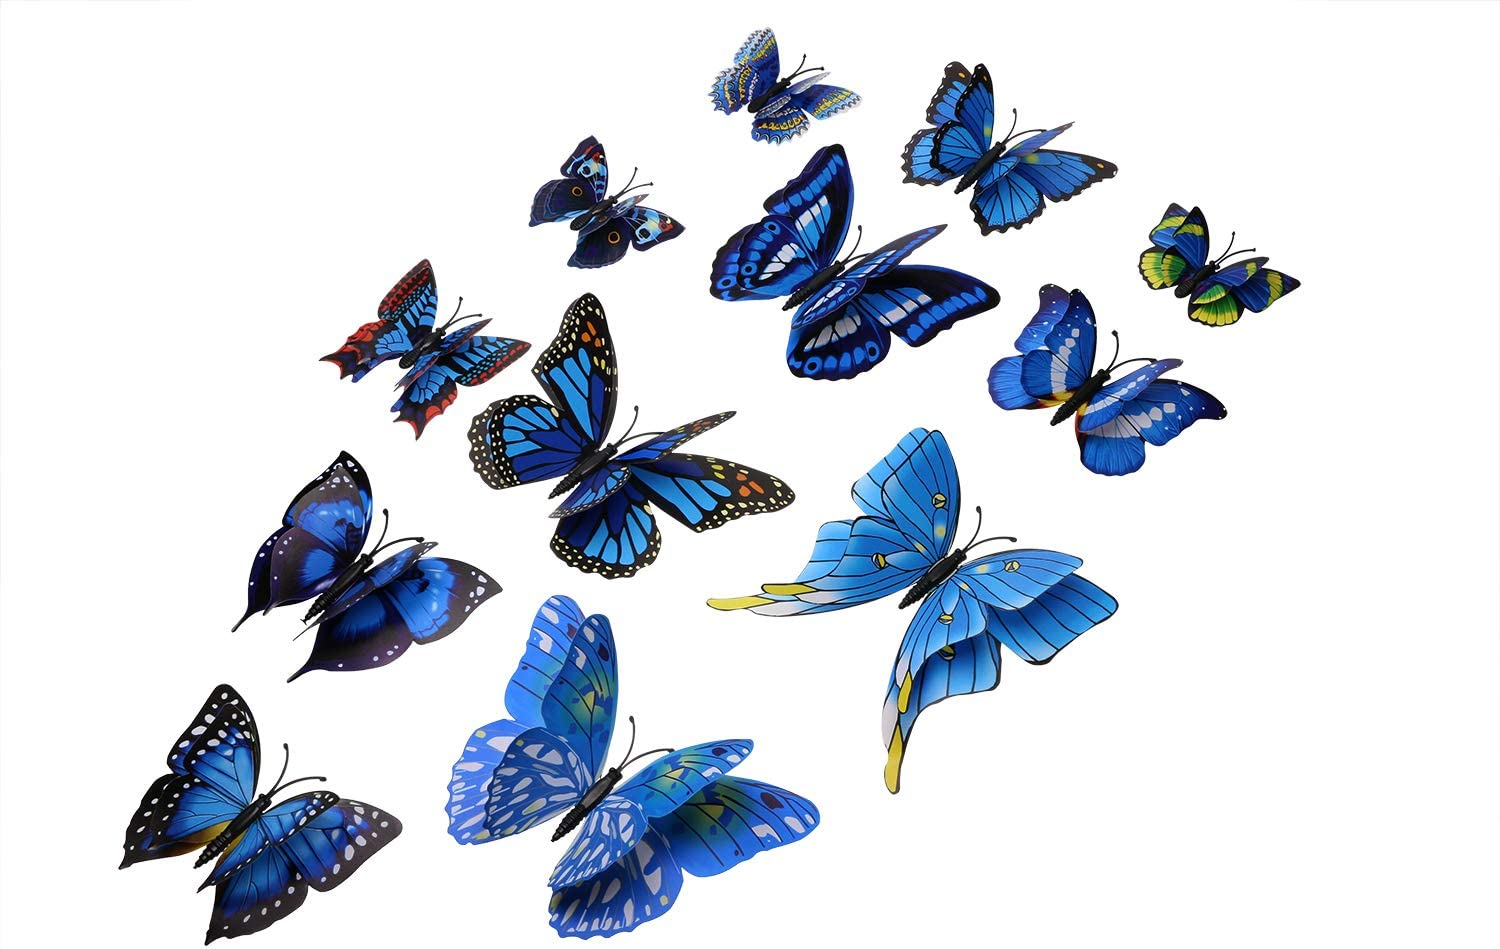 Tupalizy 12PCS Vibrant Double Wings 3D Butterfly Wall Stickers Decals DIY Art Crafts Decorations for Windows Refrigerator Kids Girls Baby Bedroom Classroom Bathroom Home Office Birthday Party (Blue)